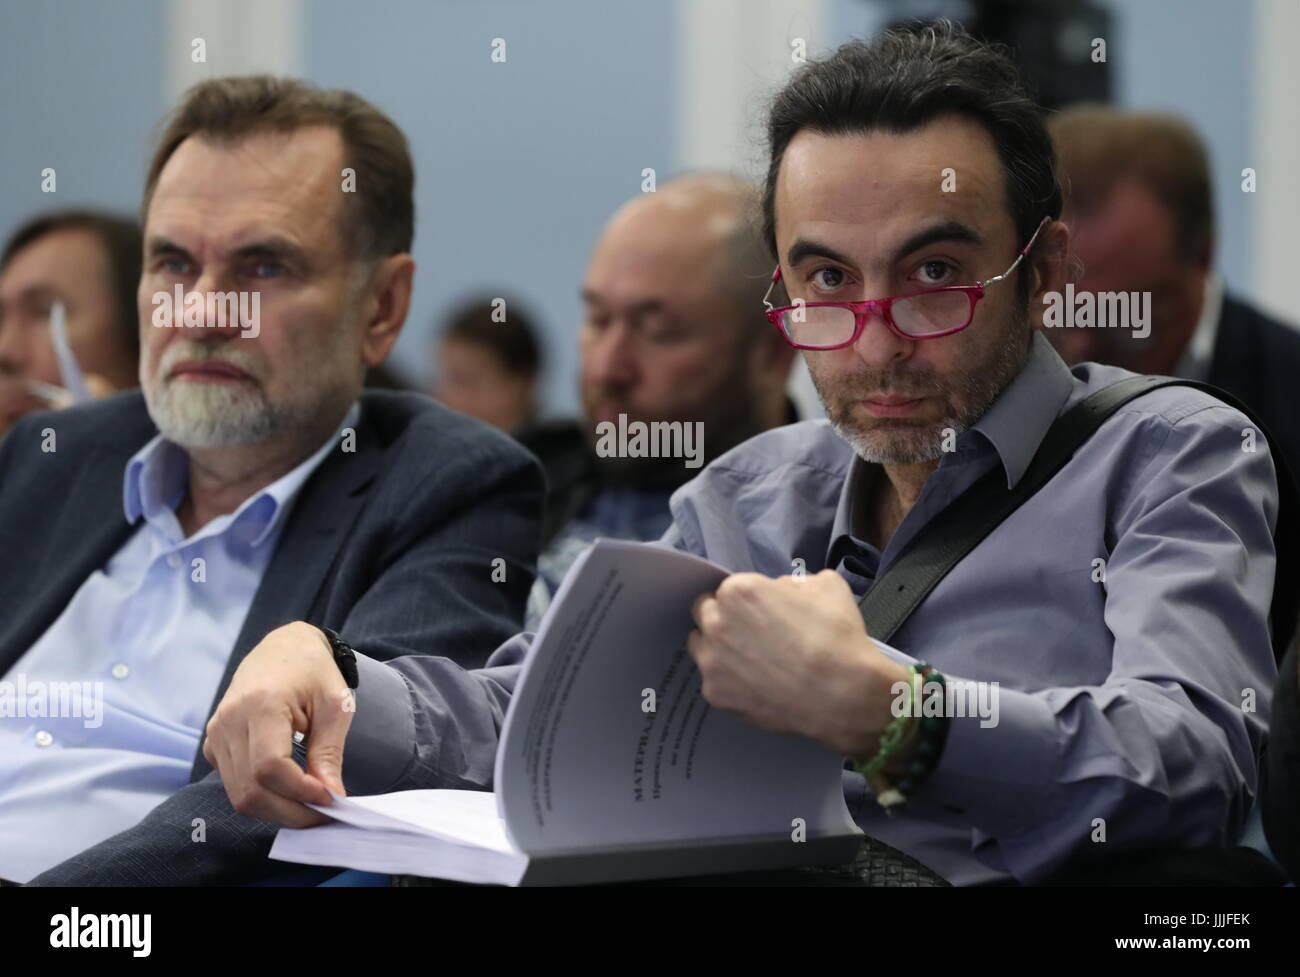 MOSCOW, RUSSIA - JULY 20, 2017: Film producer Sergei Selyanov (L) and film director Dzhanik Fayziev during a presentational - Stock Image